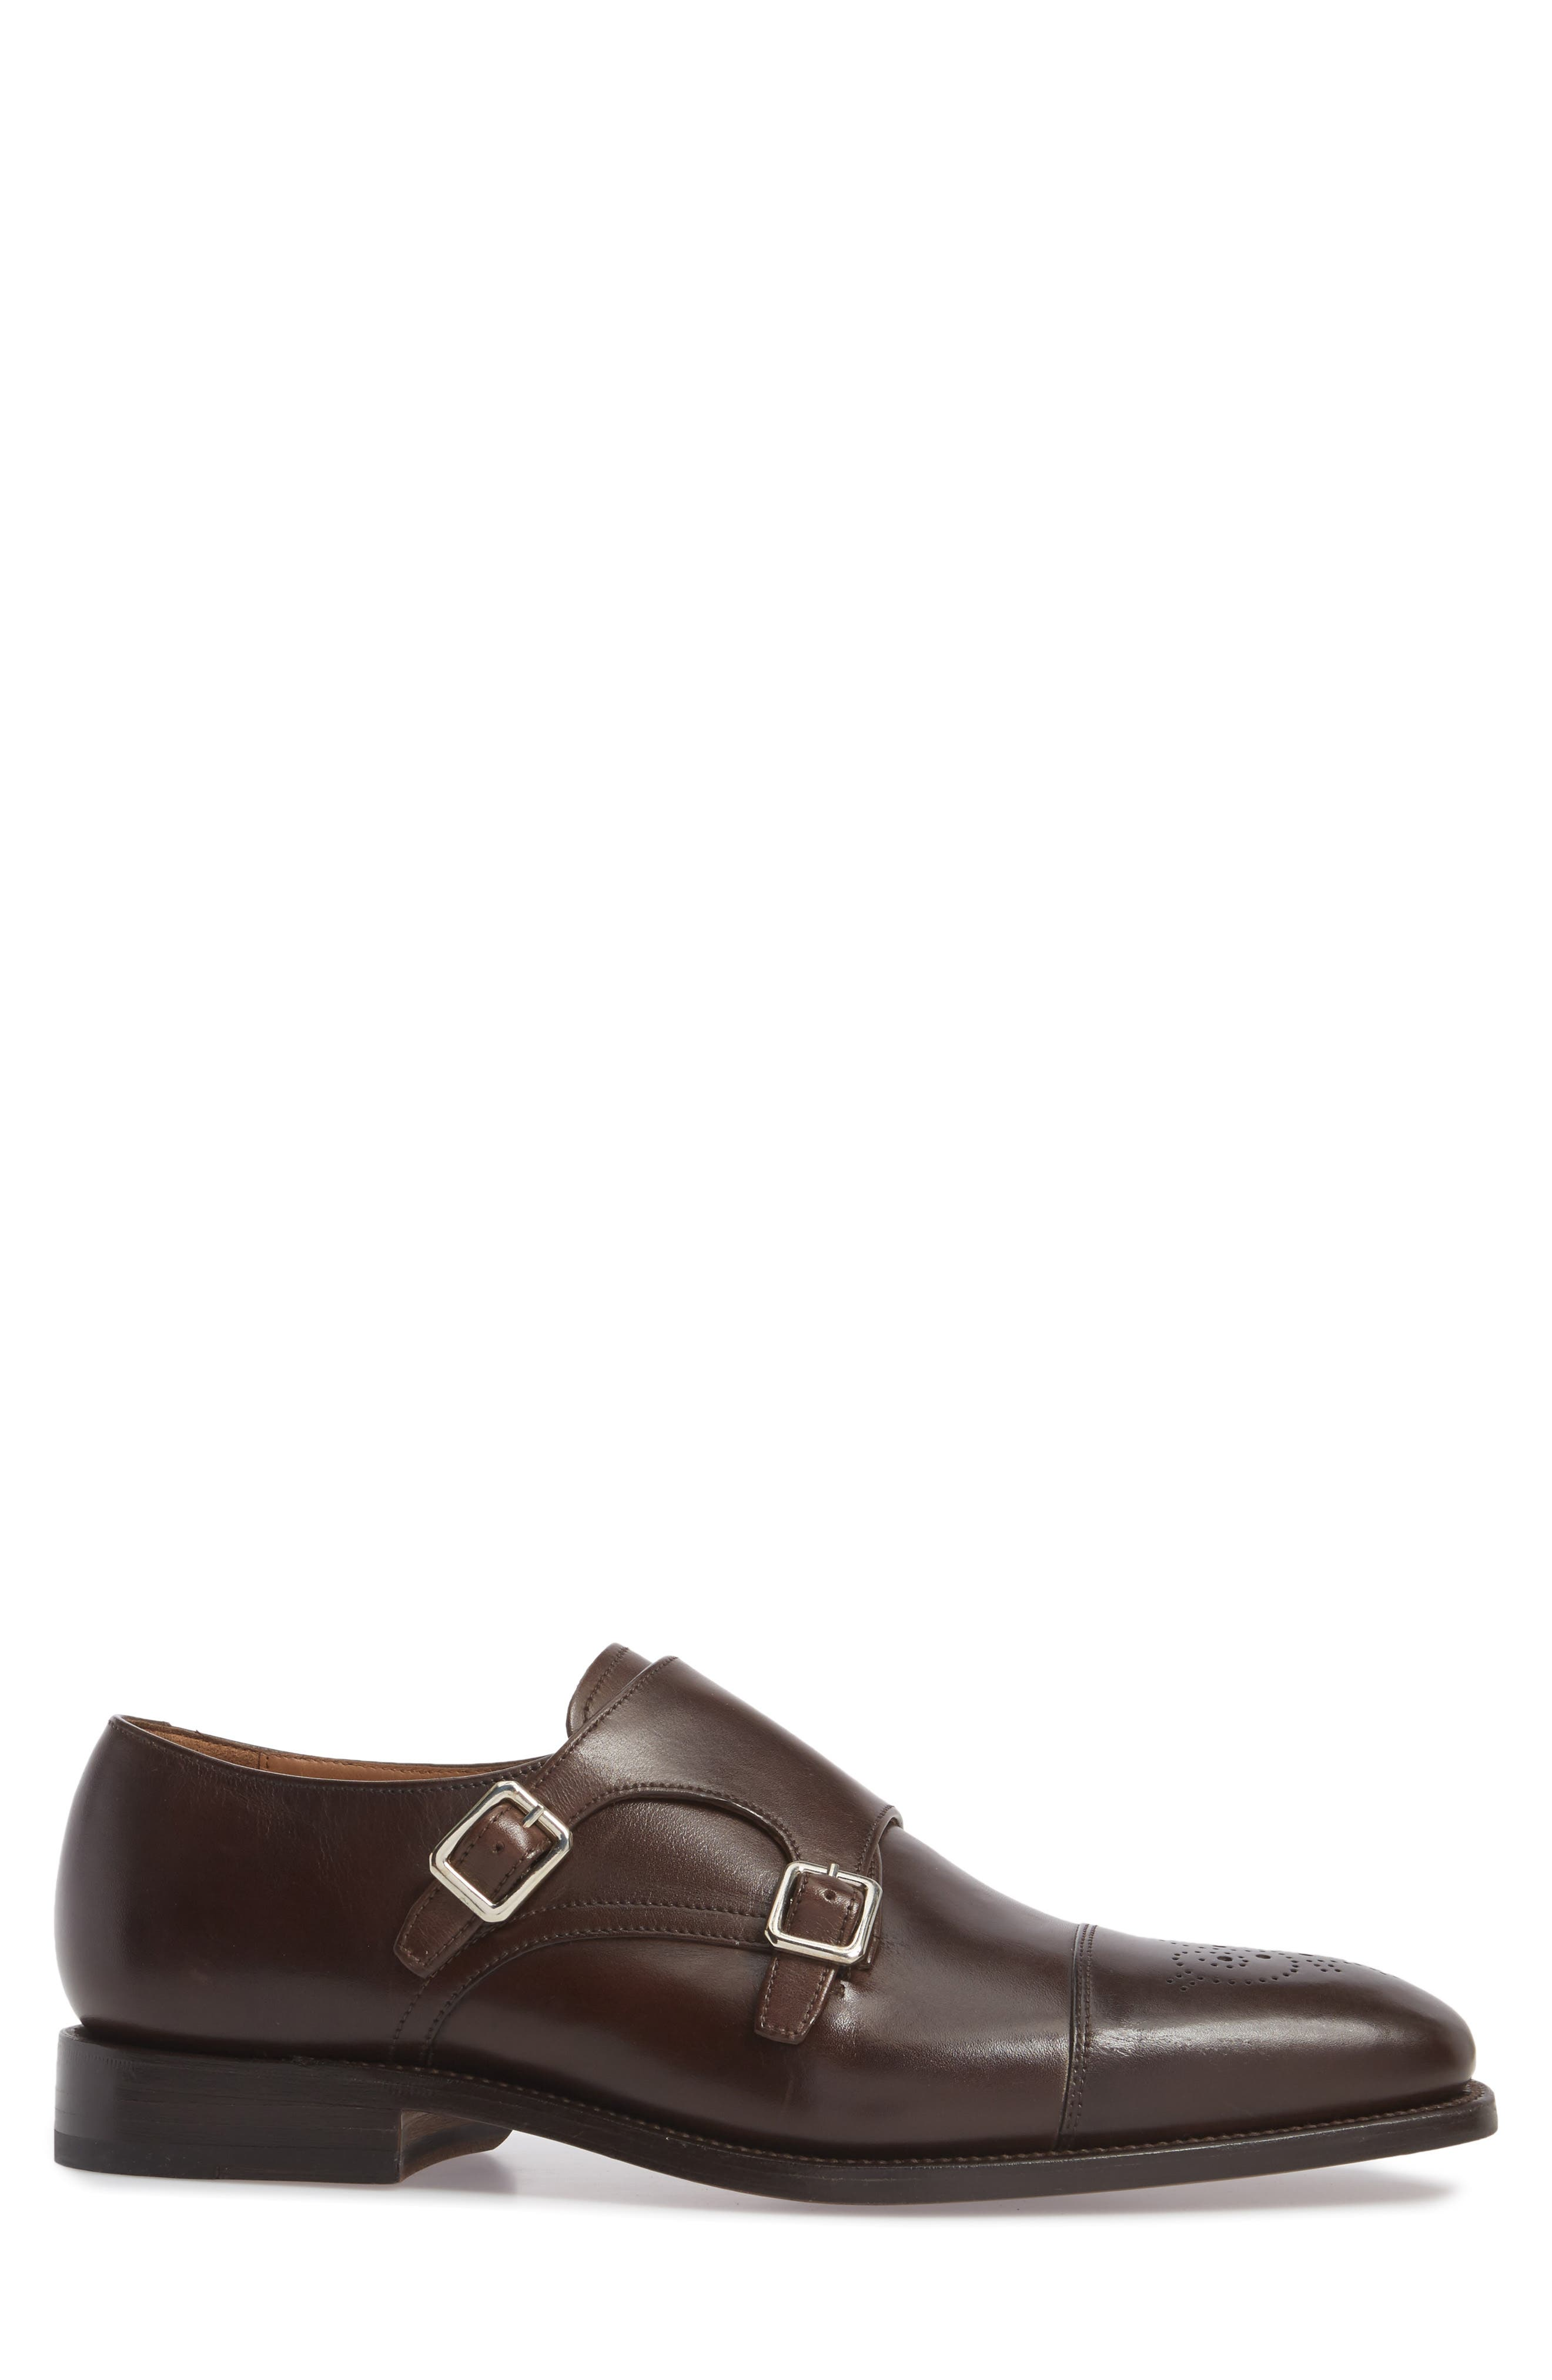 Sausalito Double Monk Strap Shoe,                             Alternate thumbnail 3, color,                             Coffee